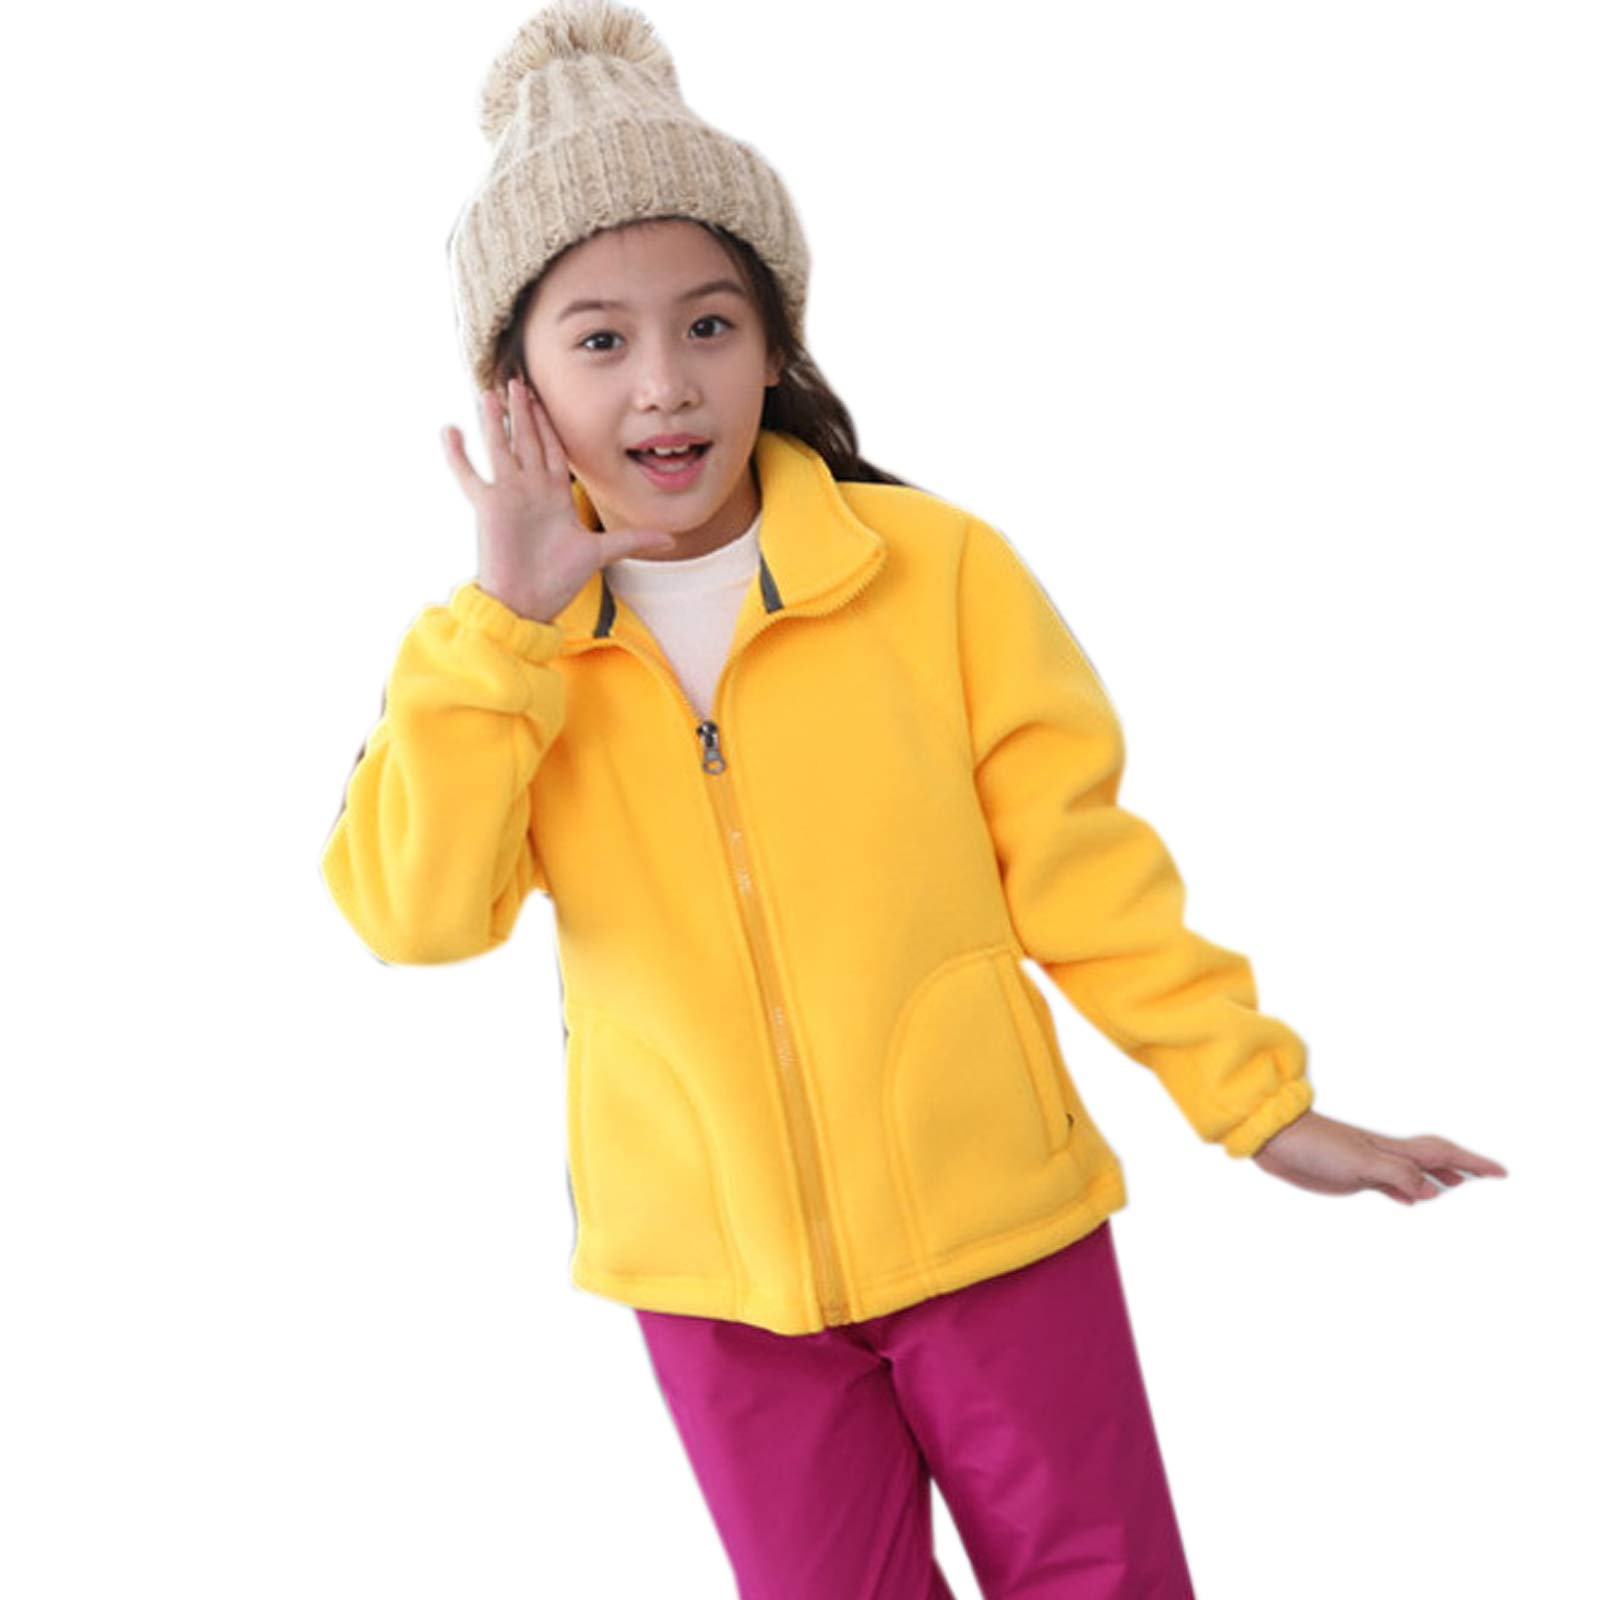 Elonglin Kids Fleece Jacket Full Zip Stand Collar Girls Sportwear Top Outwear Yellow4 Bust 33.4''(Asie XXS) by Elonglin